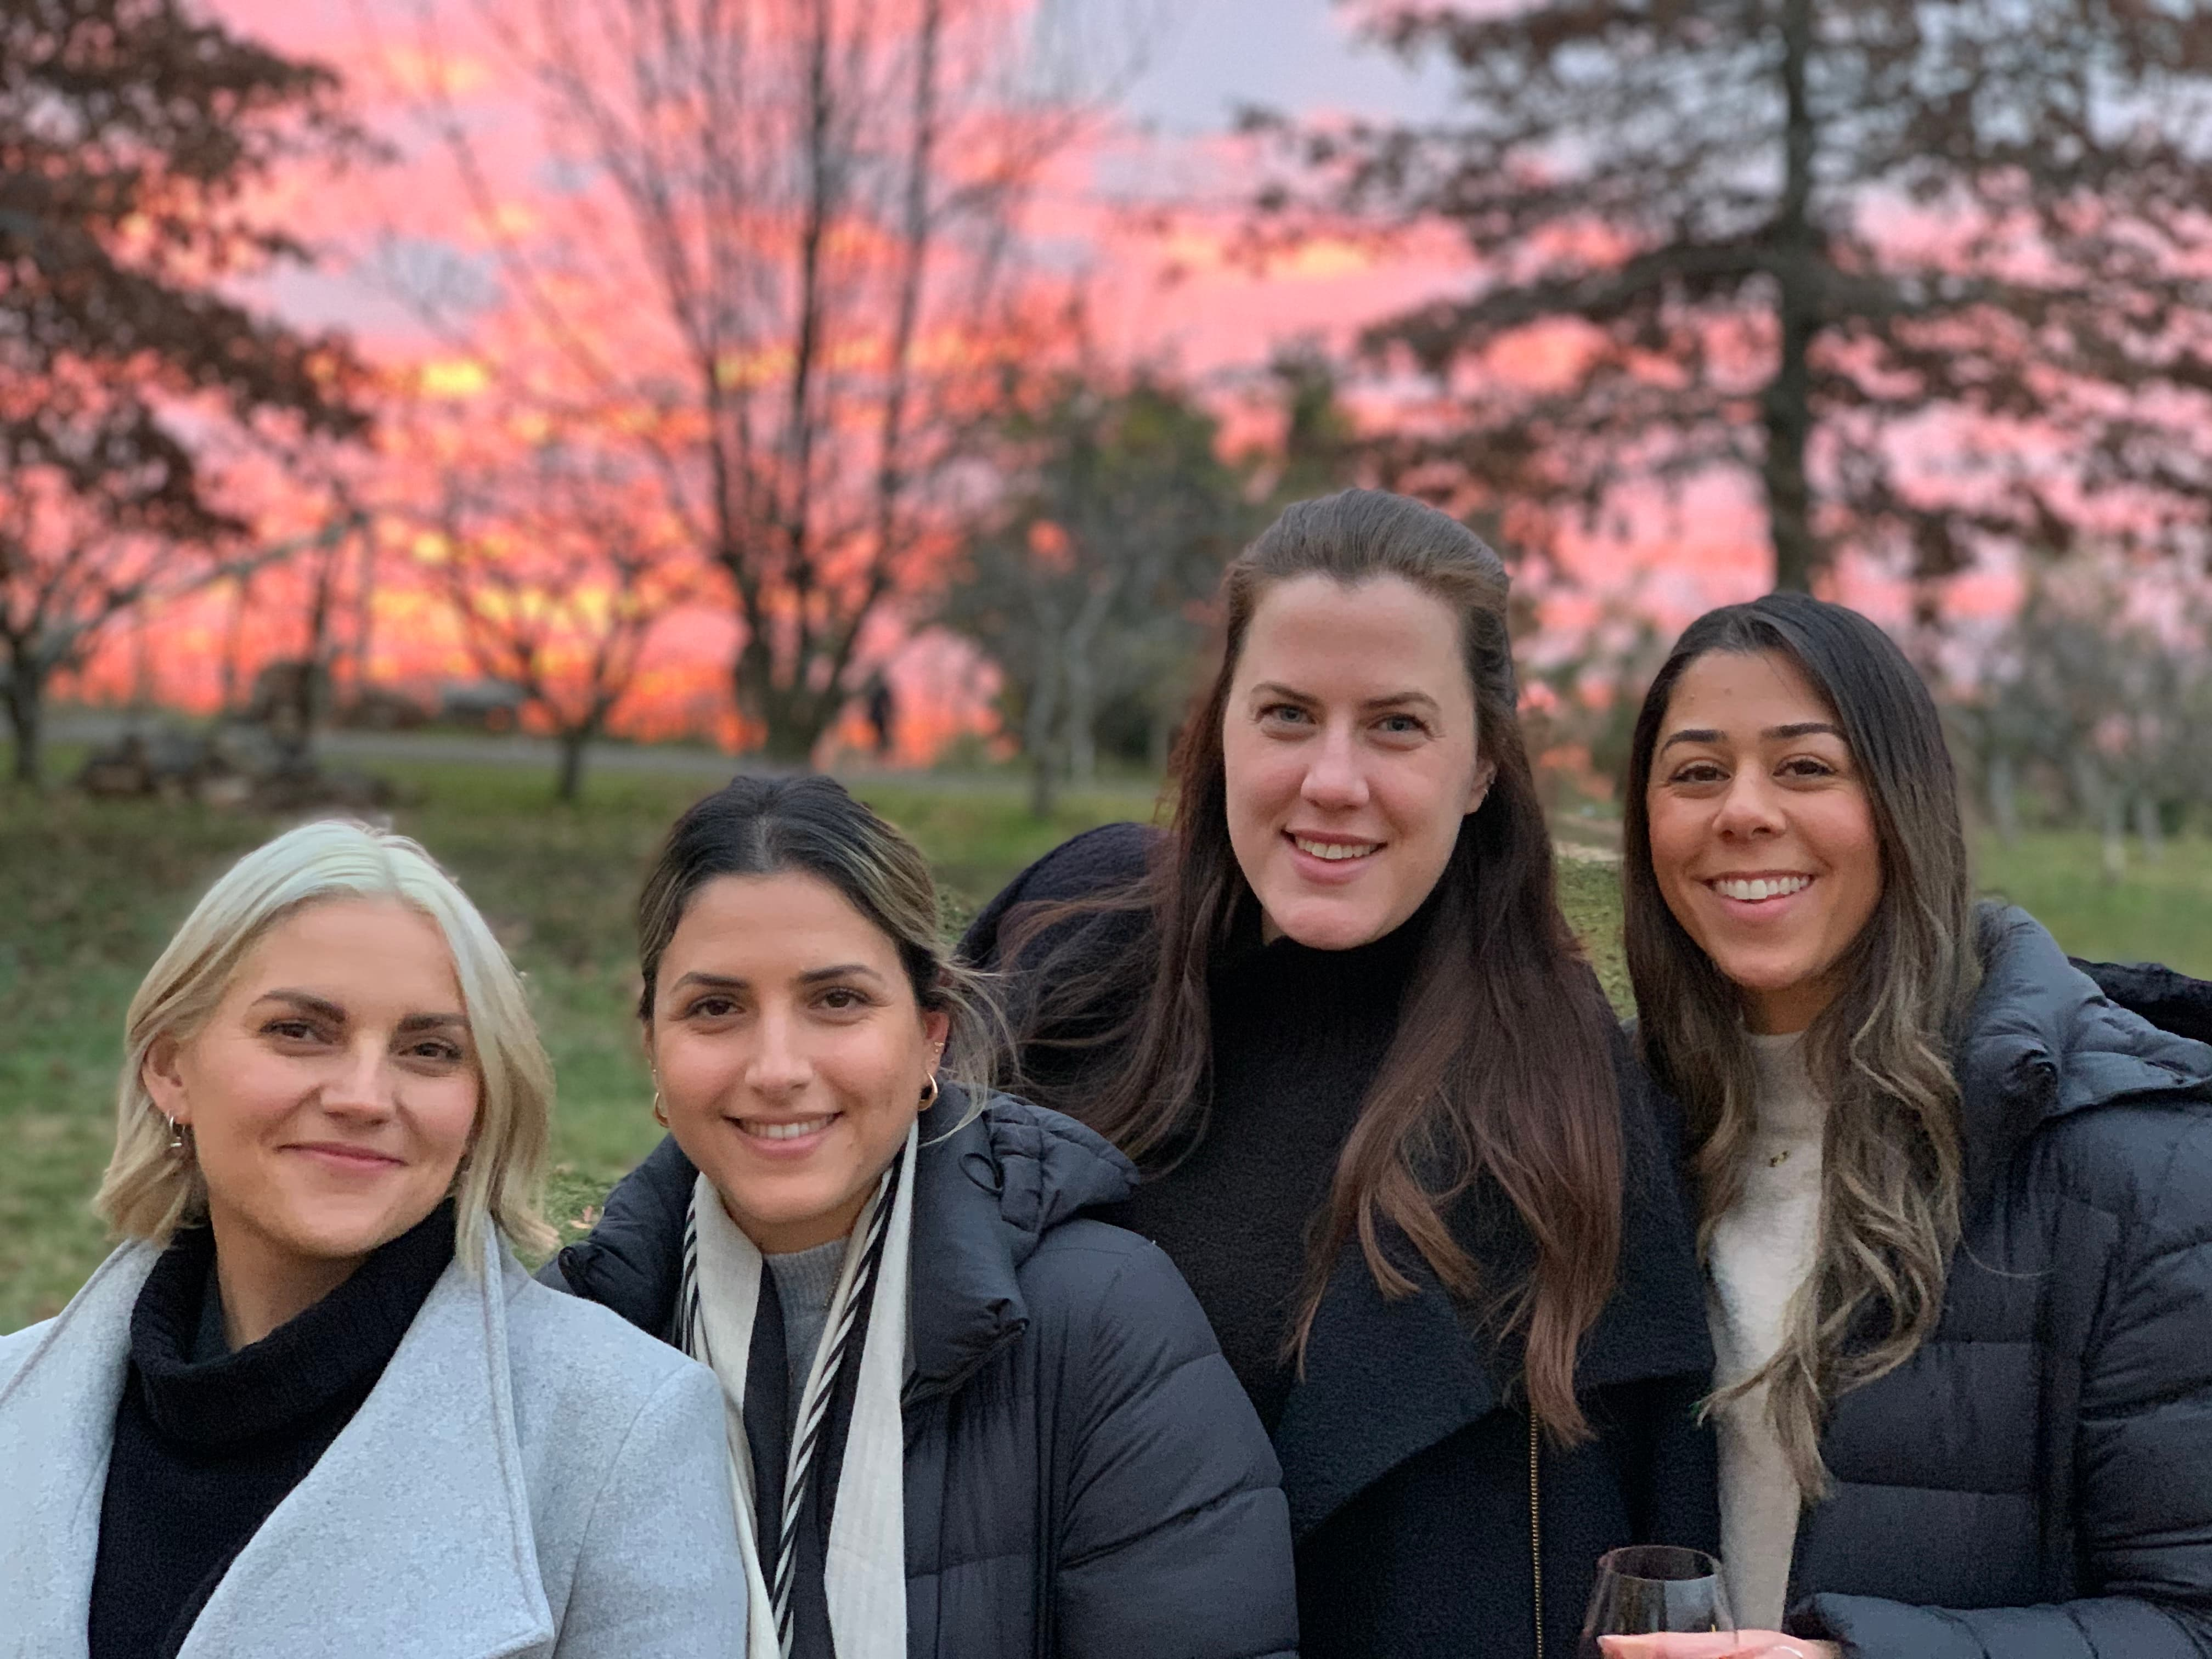 4 ladies in front of pink sky sunset